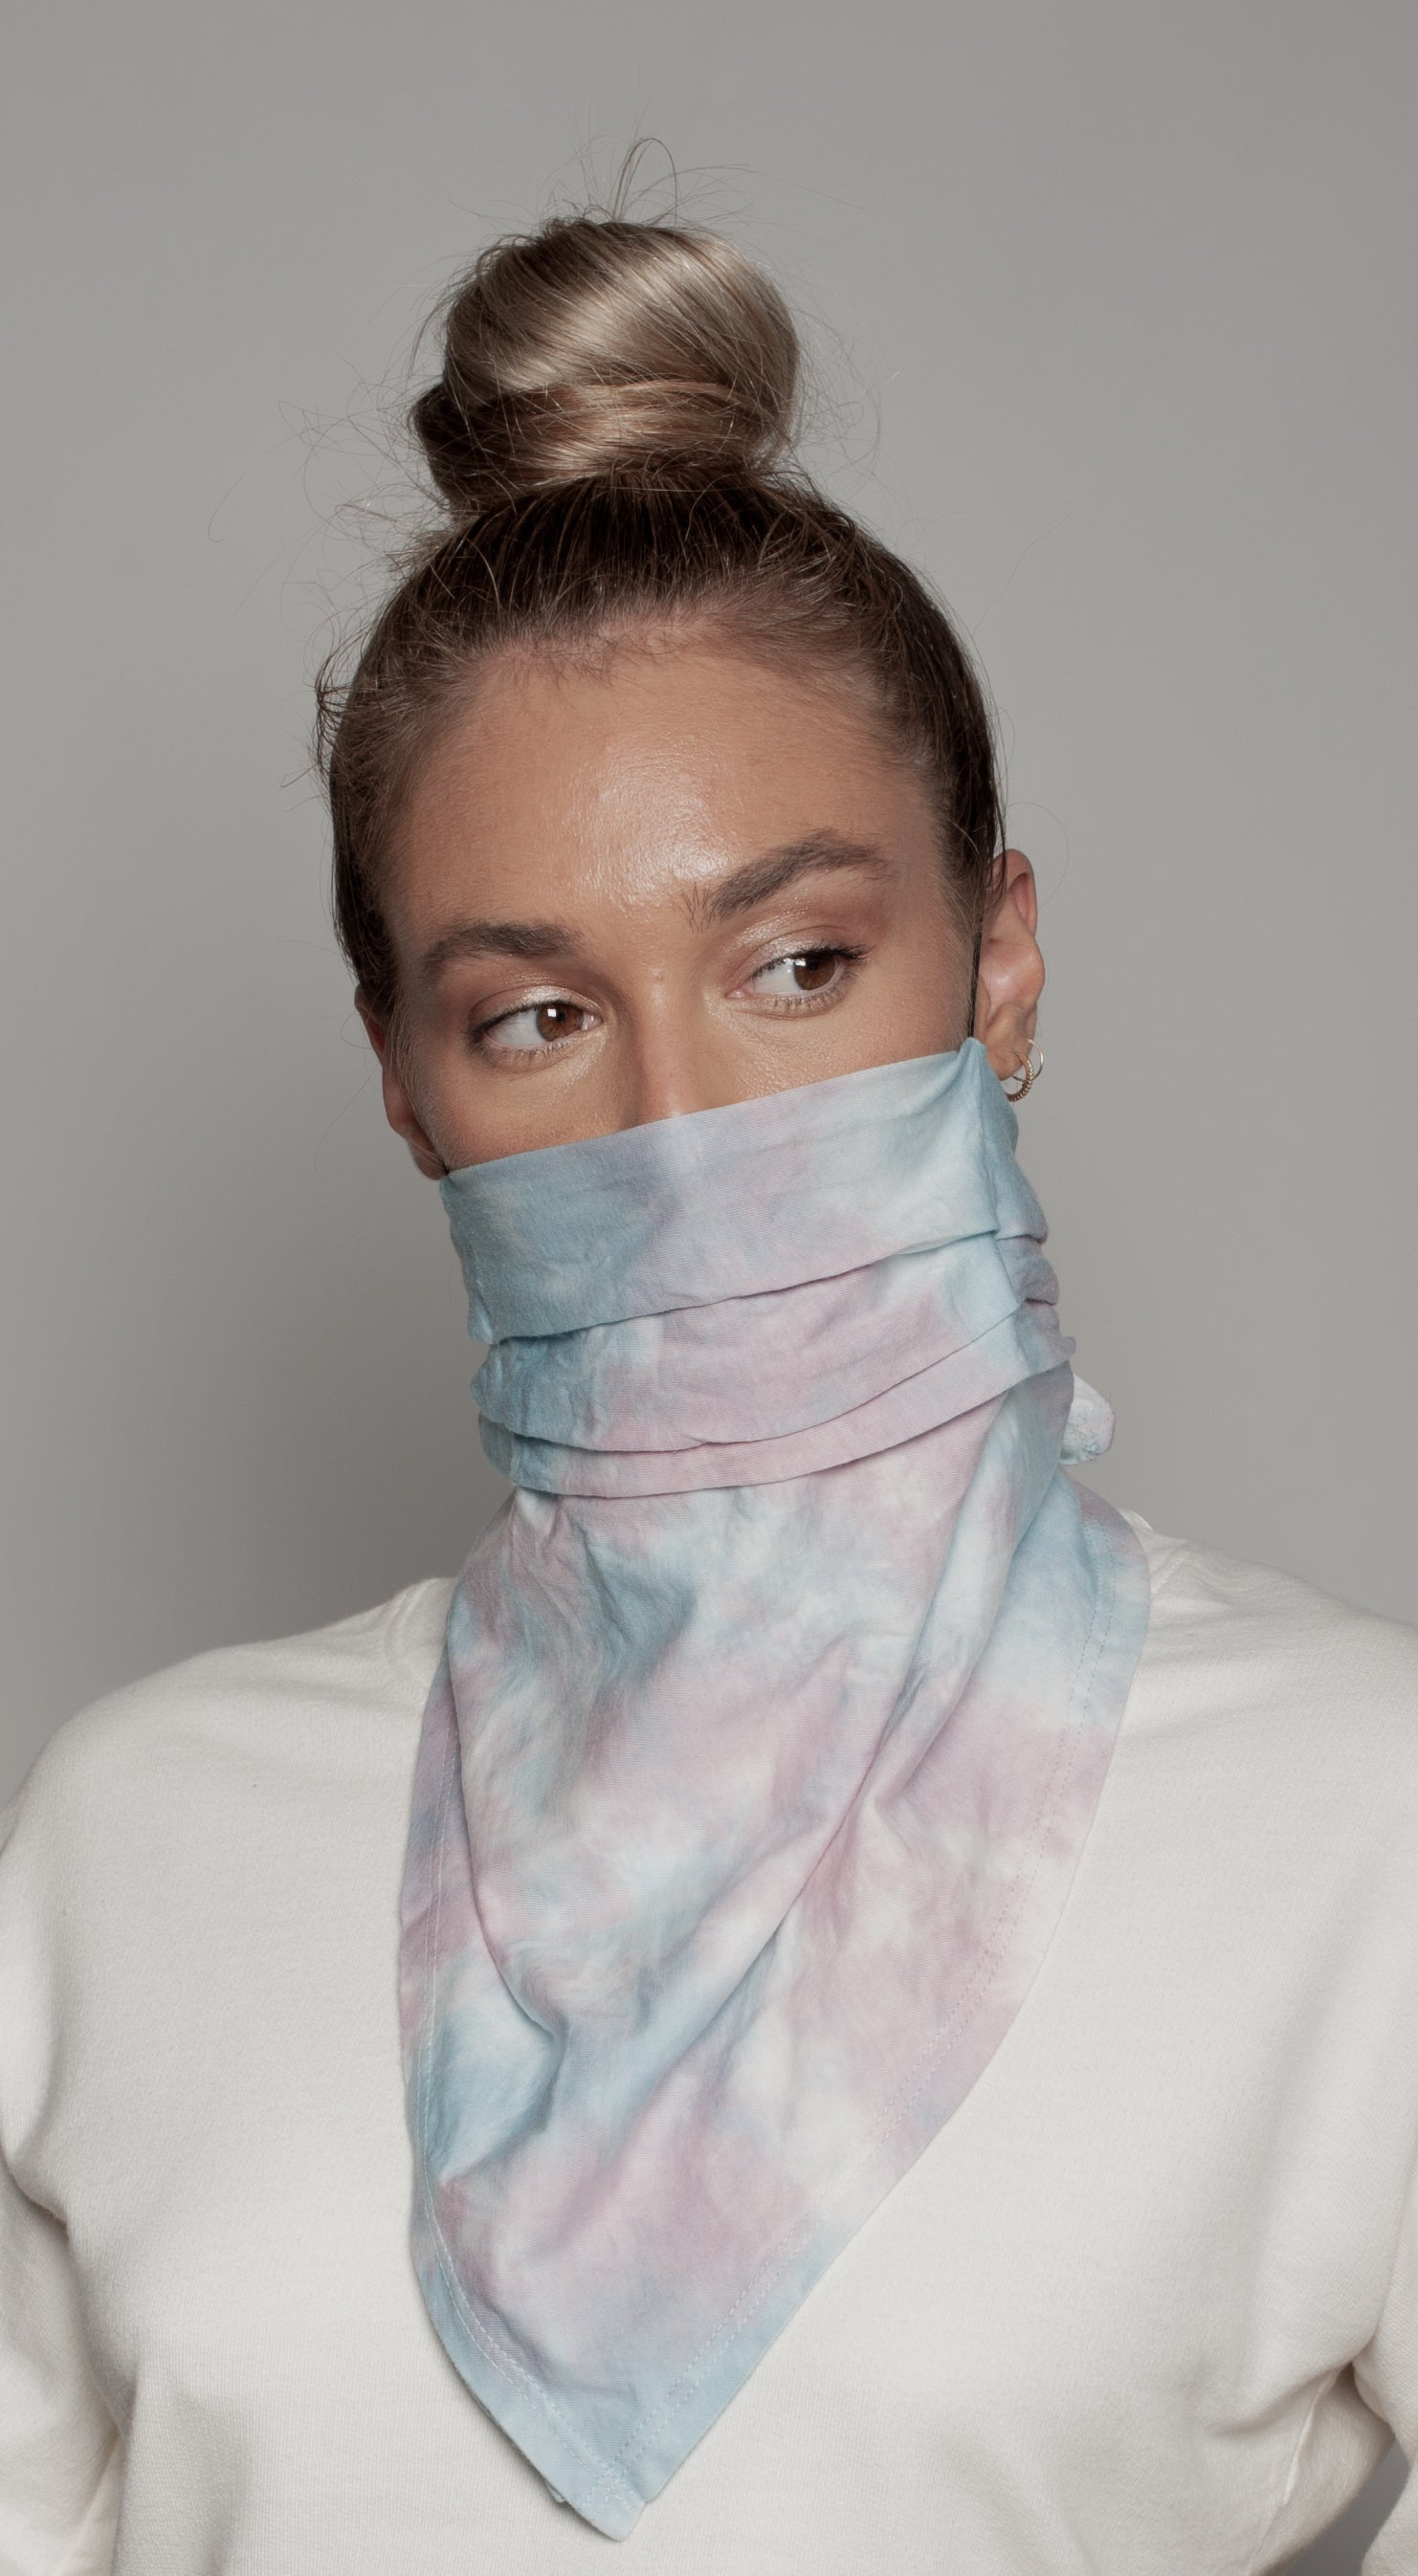 Batik Tye Dye Neck Scarf Dual Purpose Face Covering